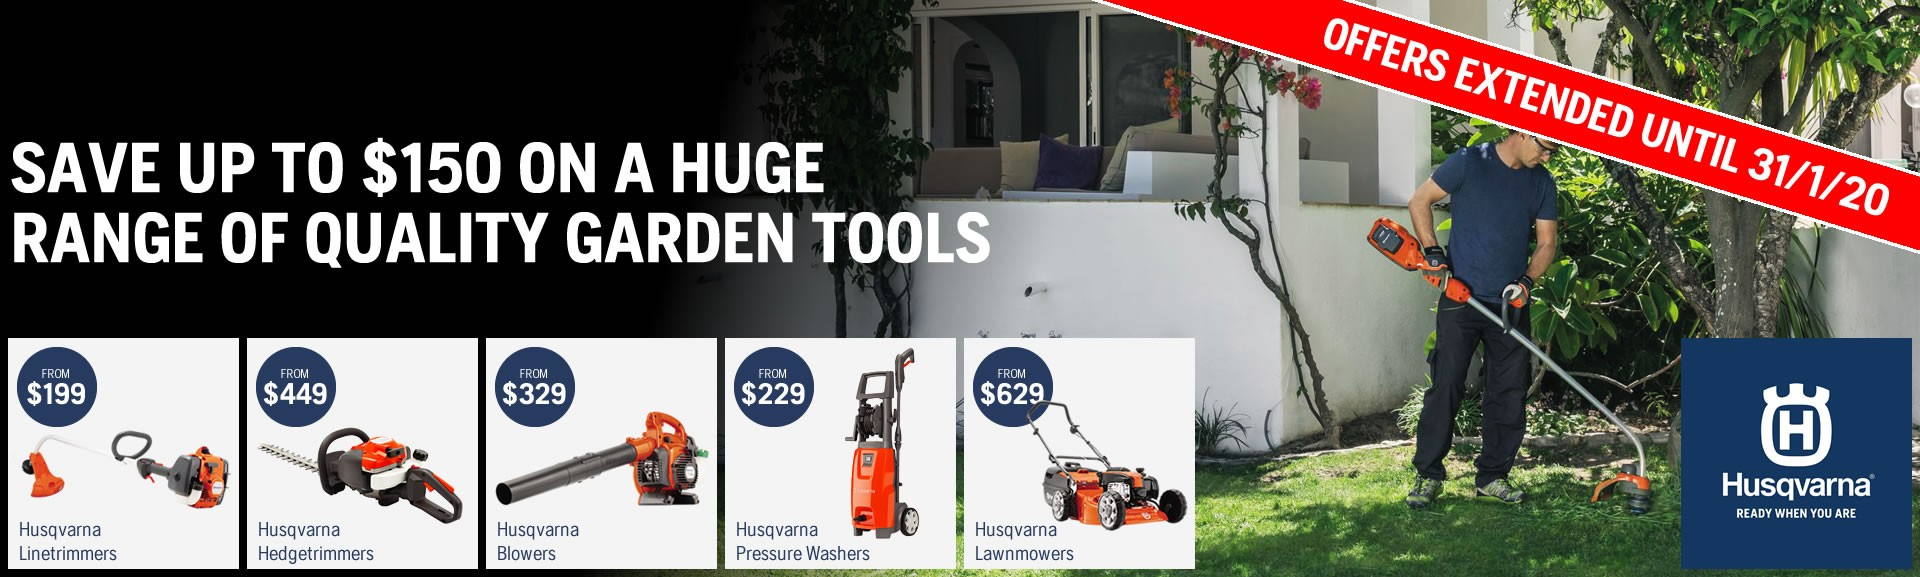 Husqvarna Spring Savings 2019